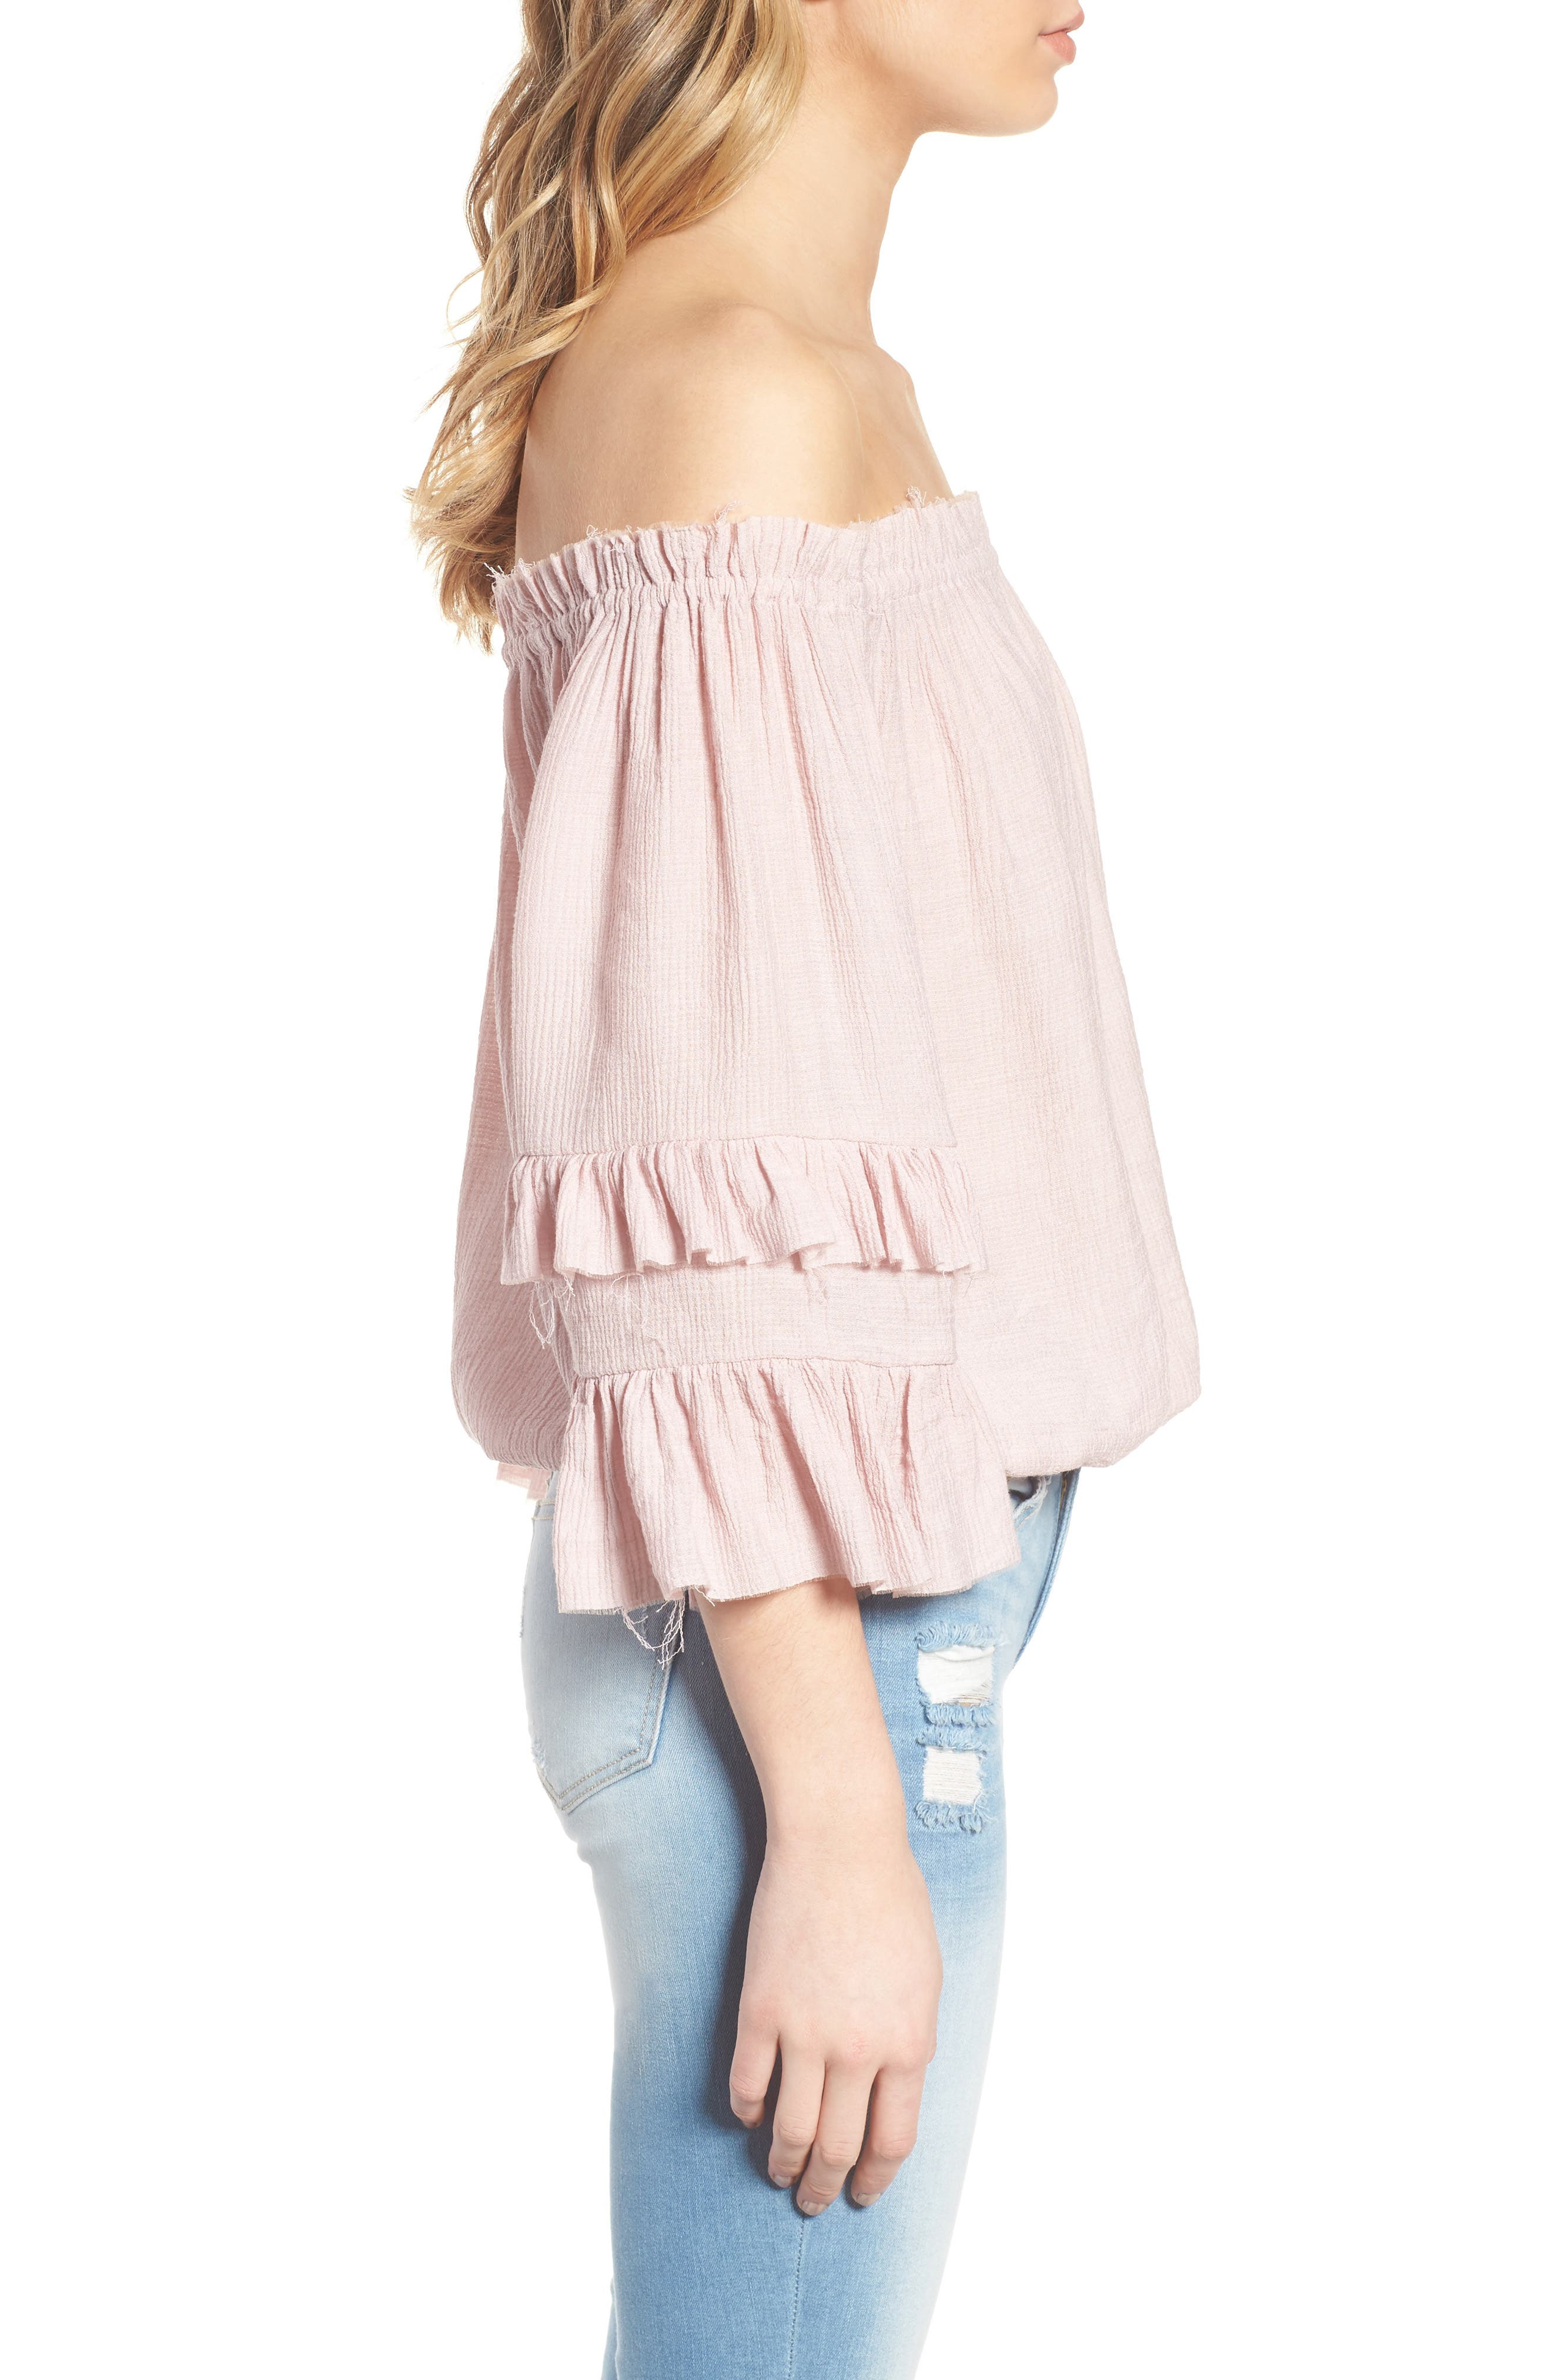 Know One Cares Tiered Off the Shoulder Top,                             Alternate thumbnail 3, color,